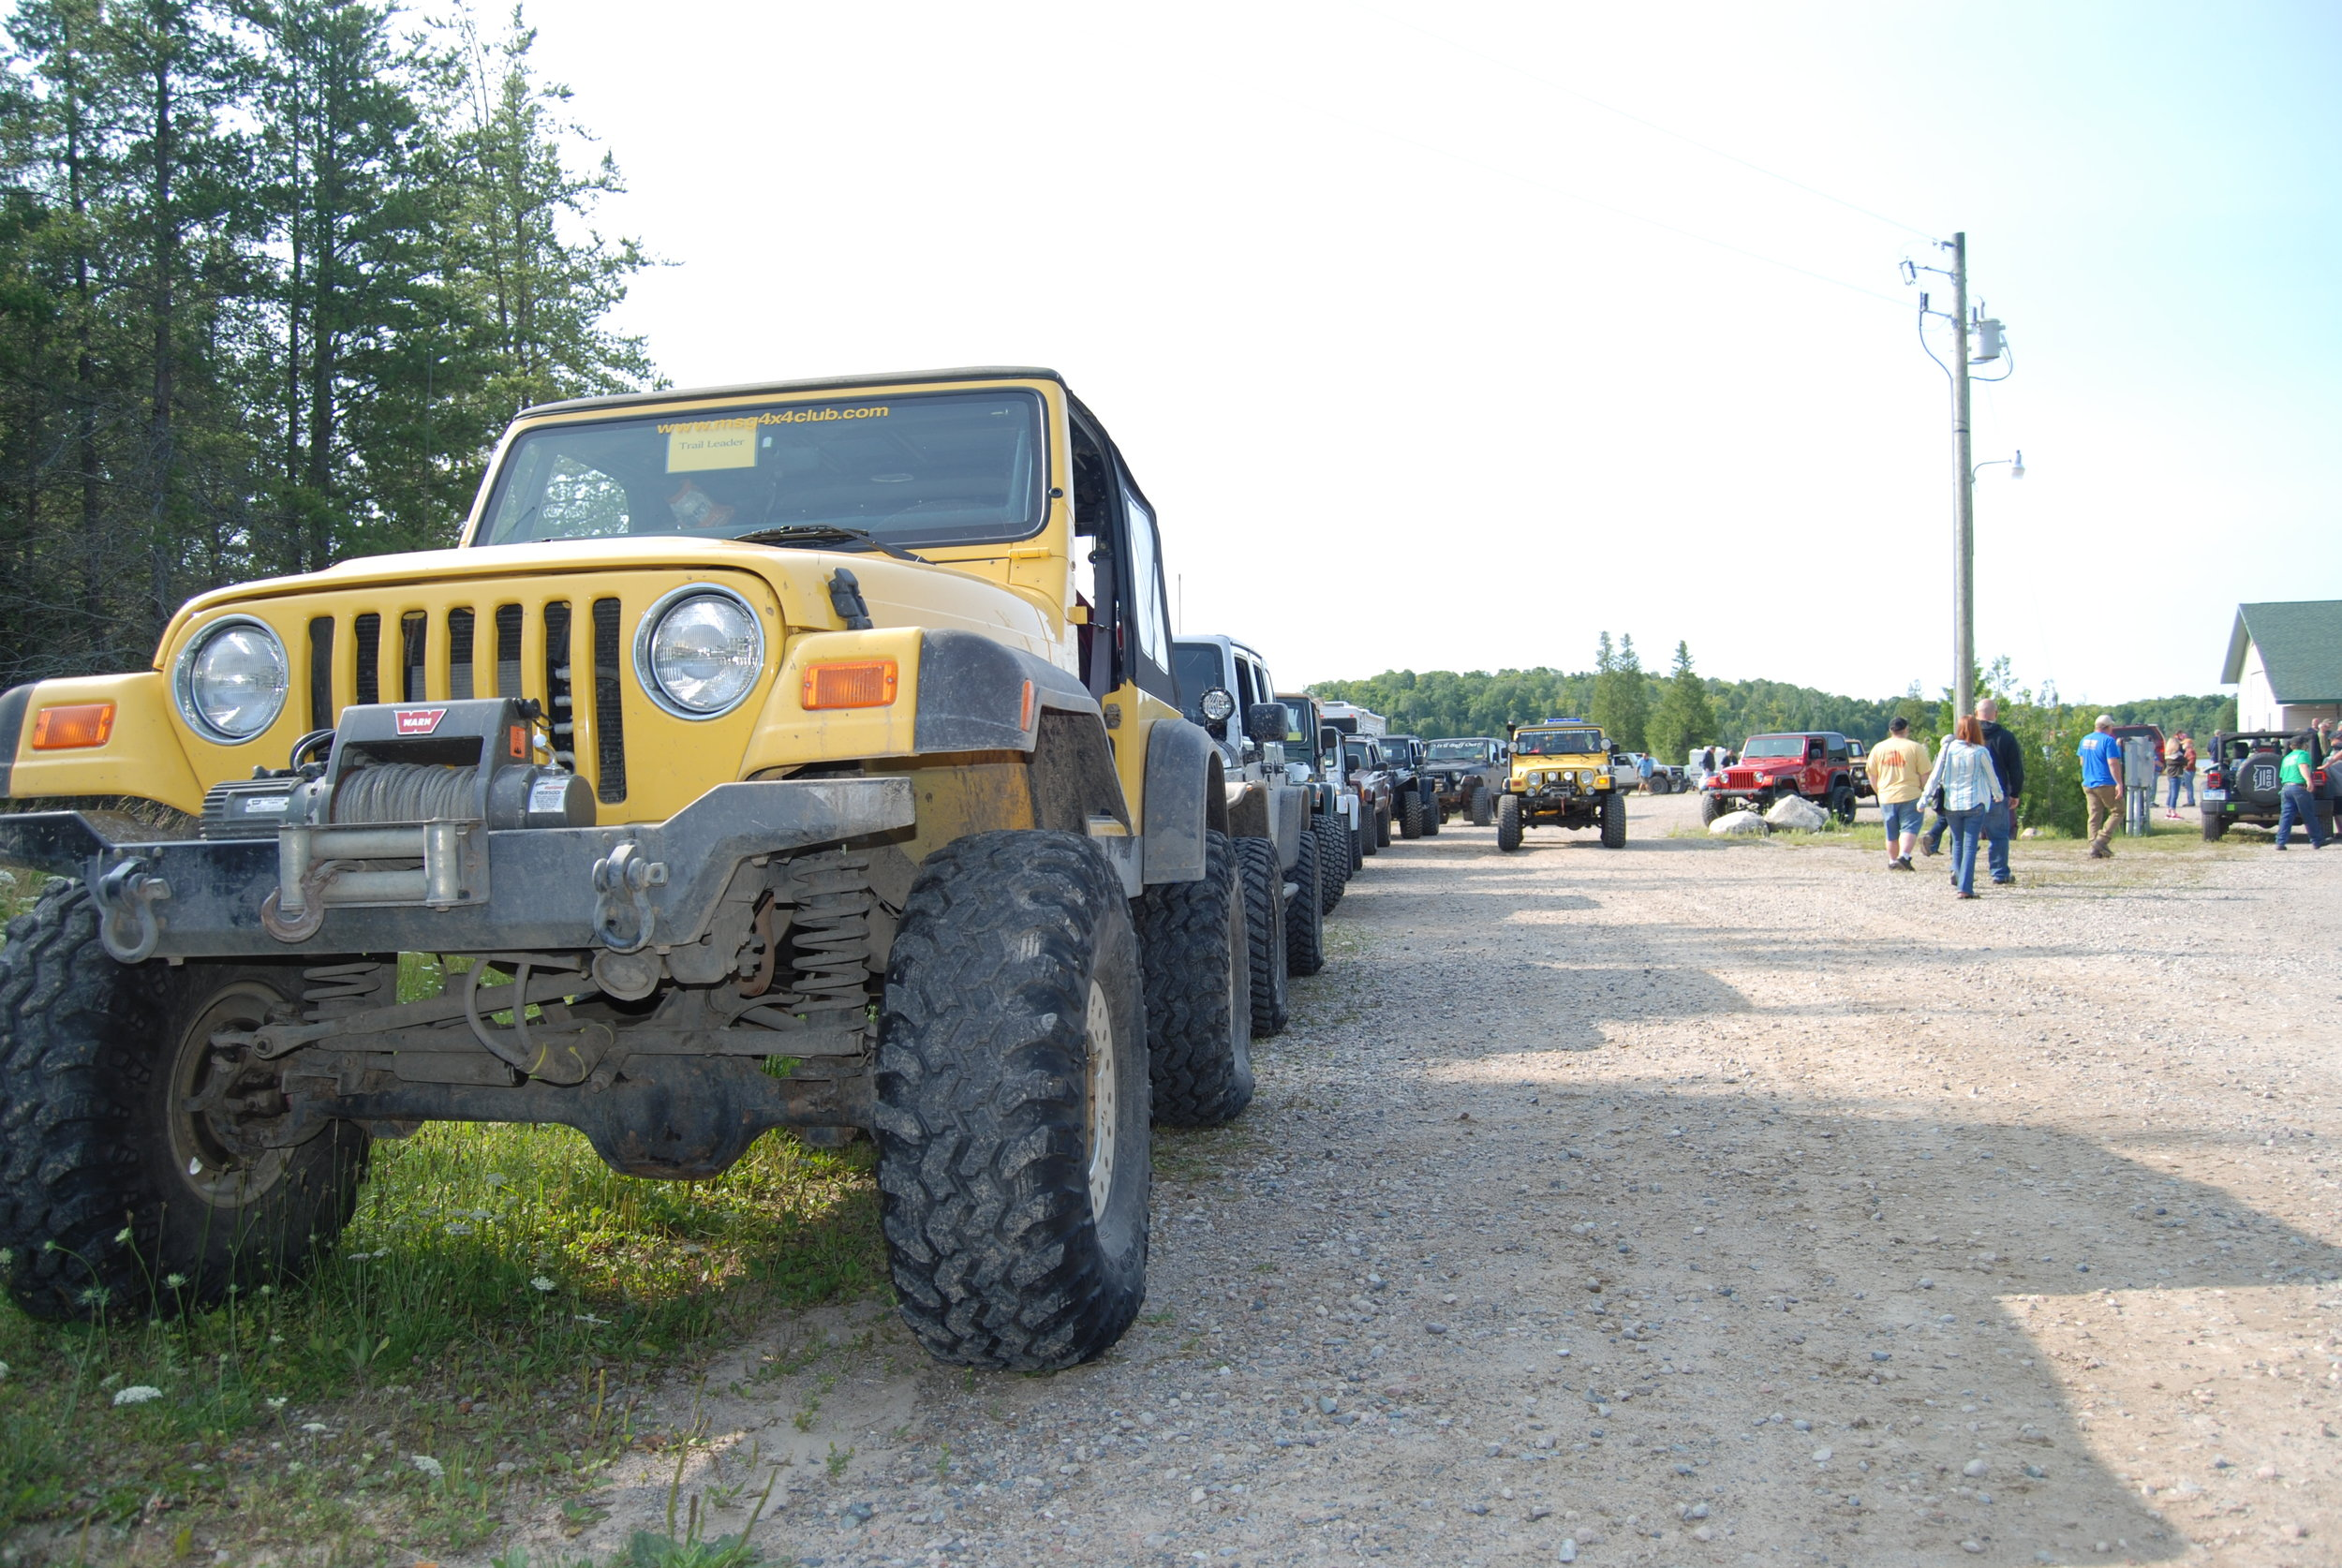 OUR CLUB HOSTS DRUMMOND ISLAND OFFROAD ADVENTURE - A GREAT LAKES FOUR WHEEL DRIVE SANCITIONED EVENT - ANNUALLY IN AUGUST.    TRAILHEAD CAMPGROUND - LINING UP FOR DRUMMOND ISLAND OFFROAD ADVENTURE IN AUGUST OF 2014.